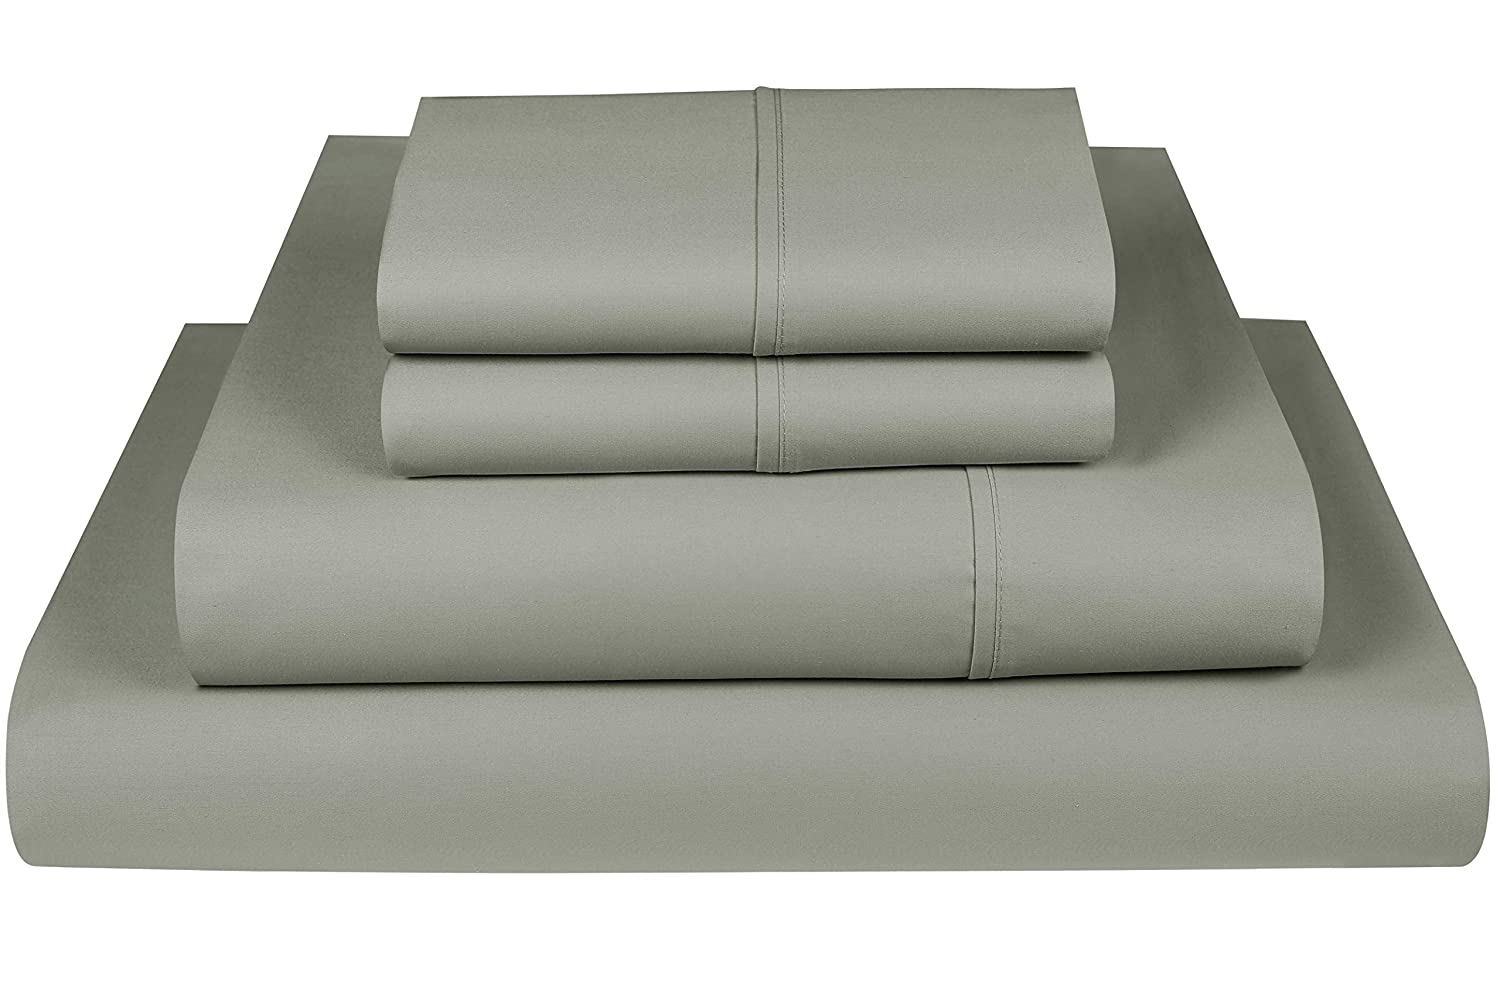 Threadmill Home Linen 800 Thread Count 100% Cotton Sheets, Moon Rock Grey King Size Sheets 4 Piece Cotton Bed Sheet Set, ELS Cotton Bed Sheets, Solid Sateen Weave Fits Mattress Up to 18'' Deep Pocket